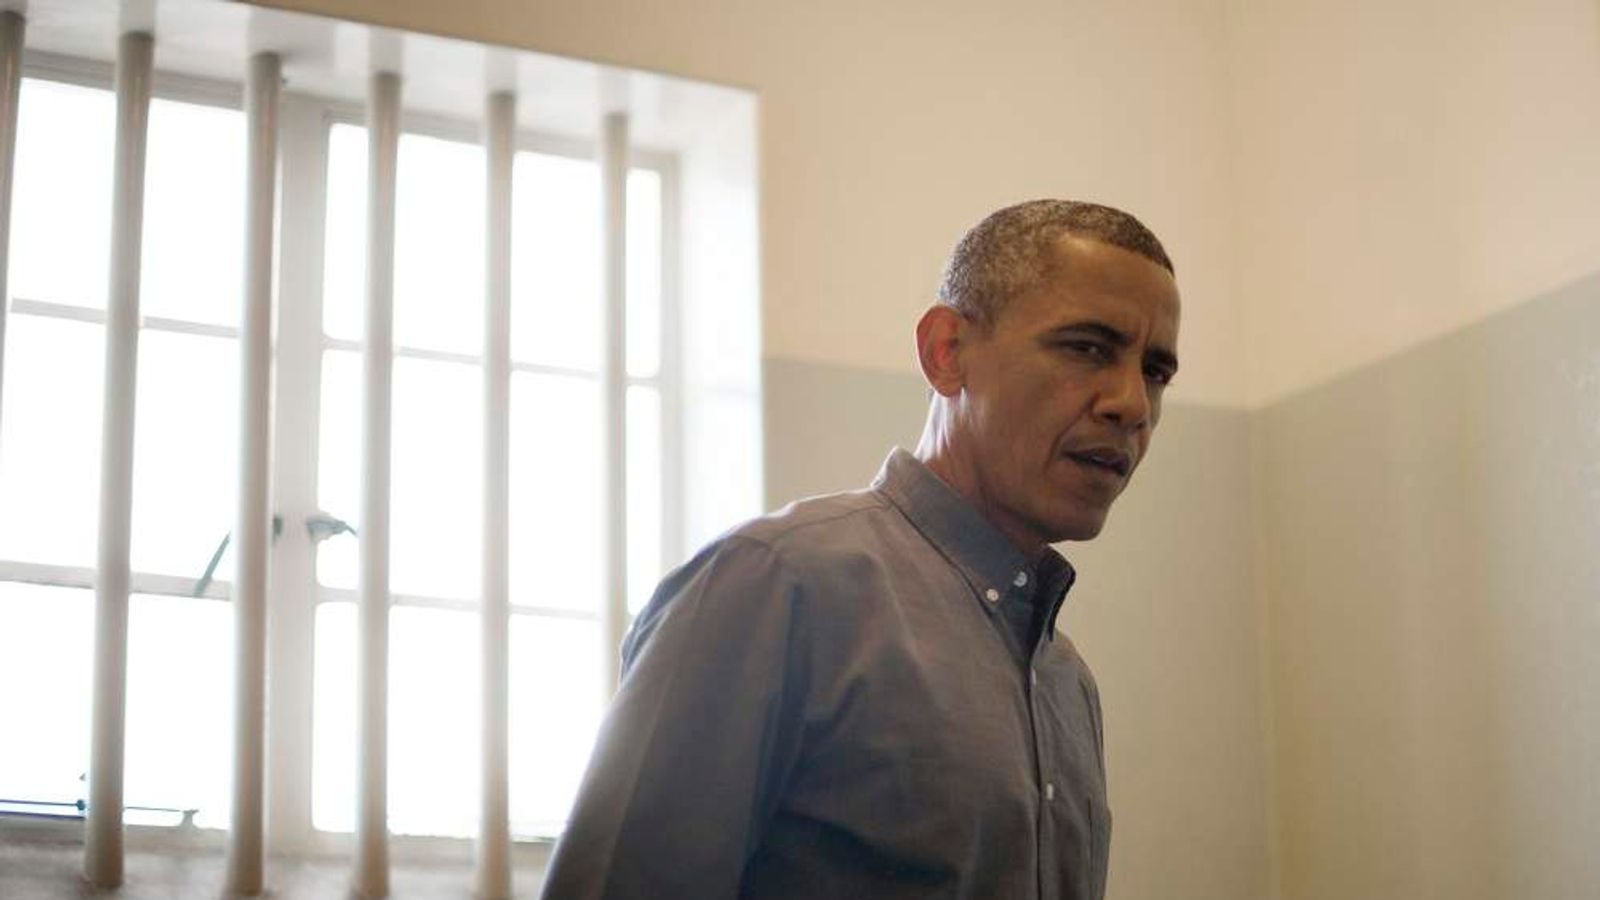 Barack Obama visits Nelson Mandela's prison cell on Robben Island